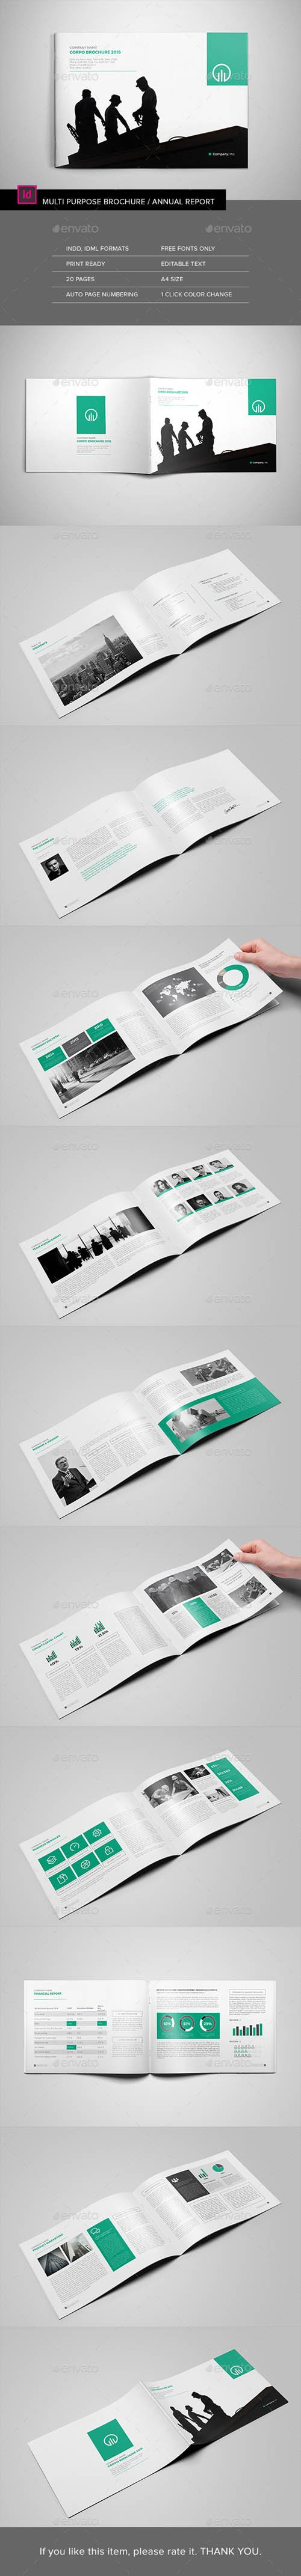 Landscape Multipurpose Brochure 15613396